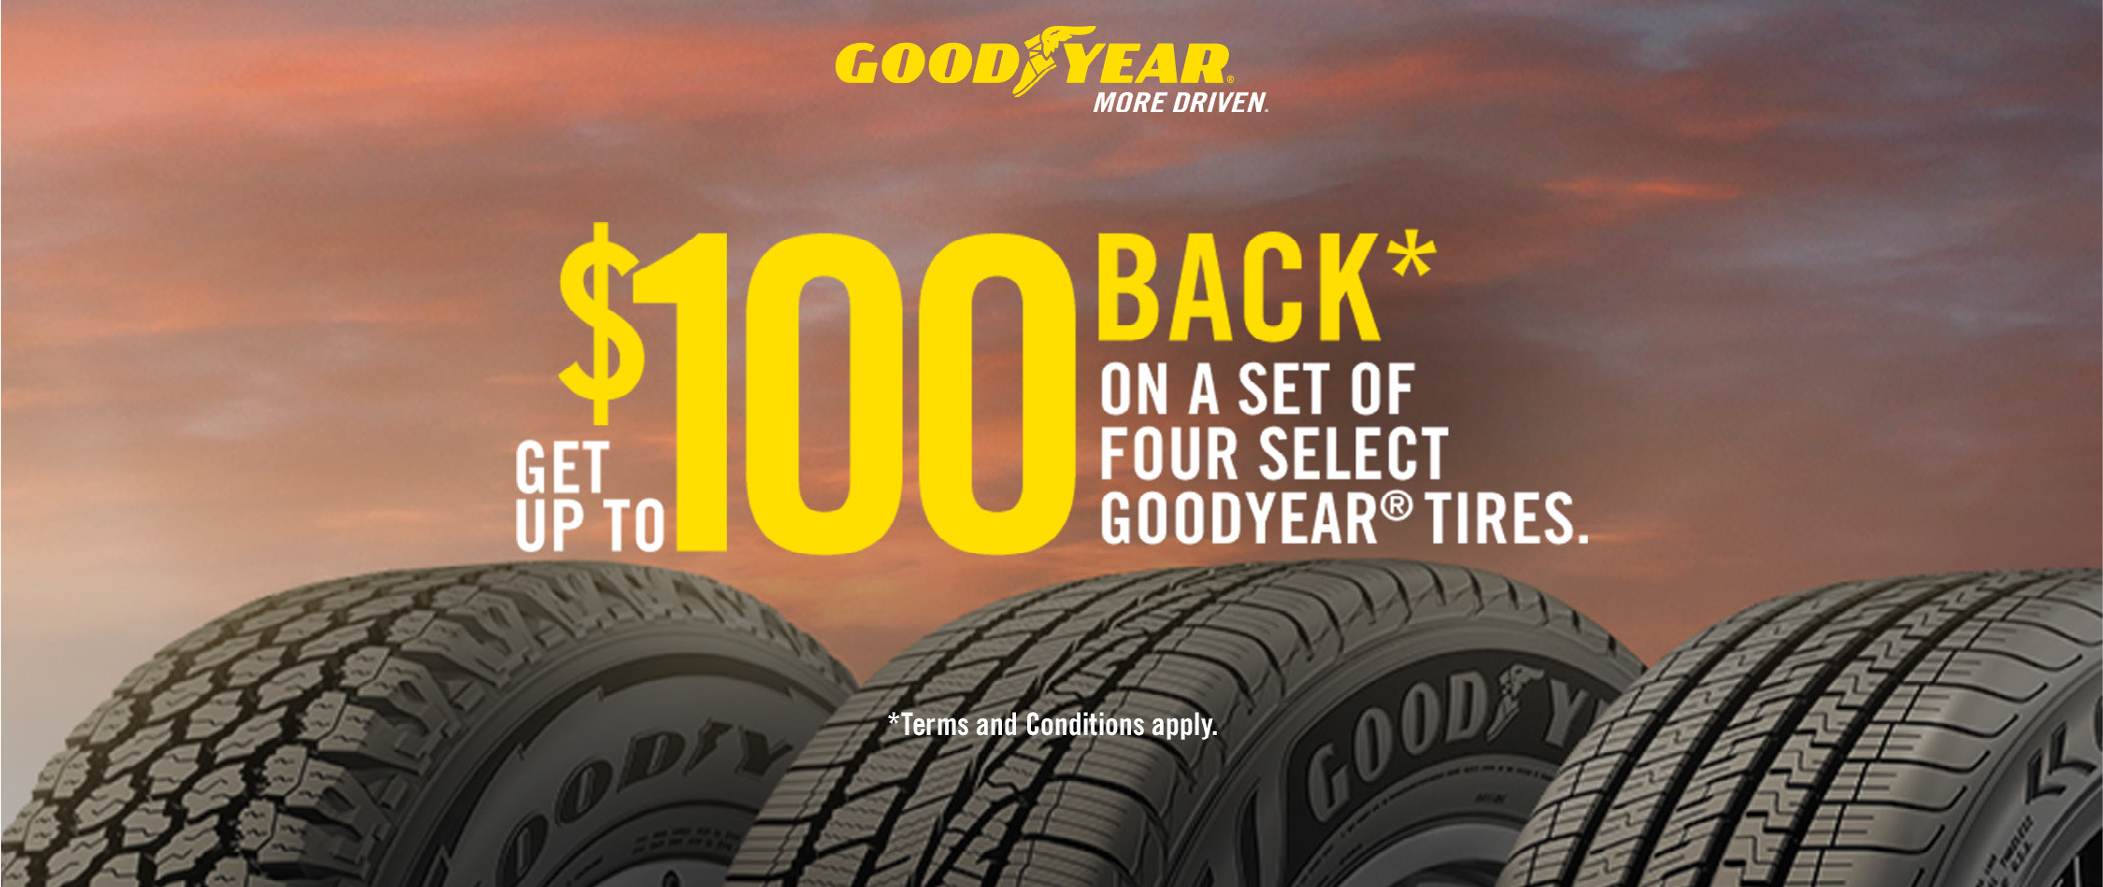 Get Up To $100 Back* Goodyear Tires